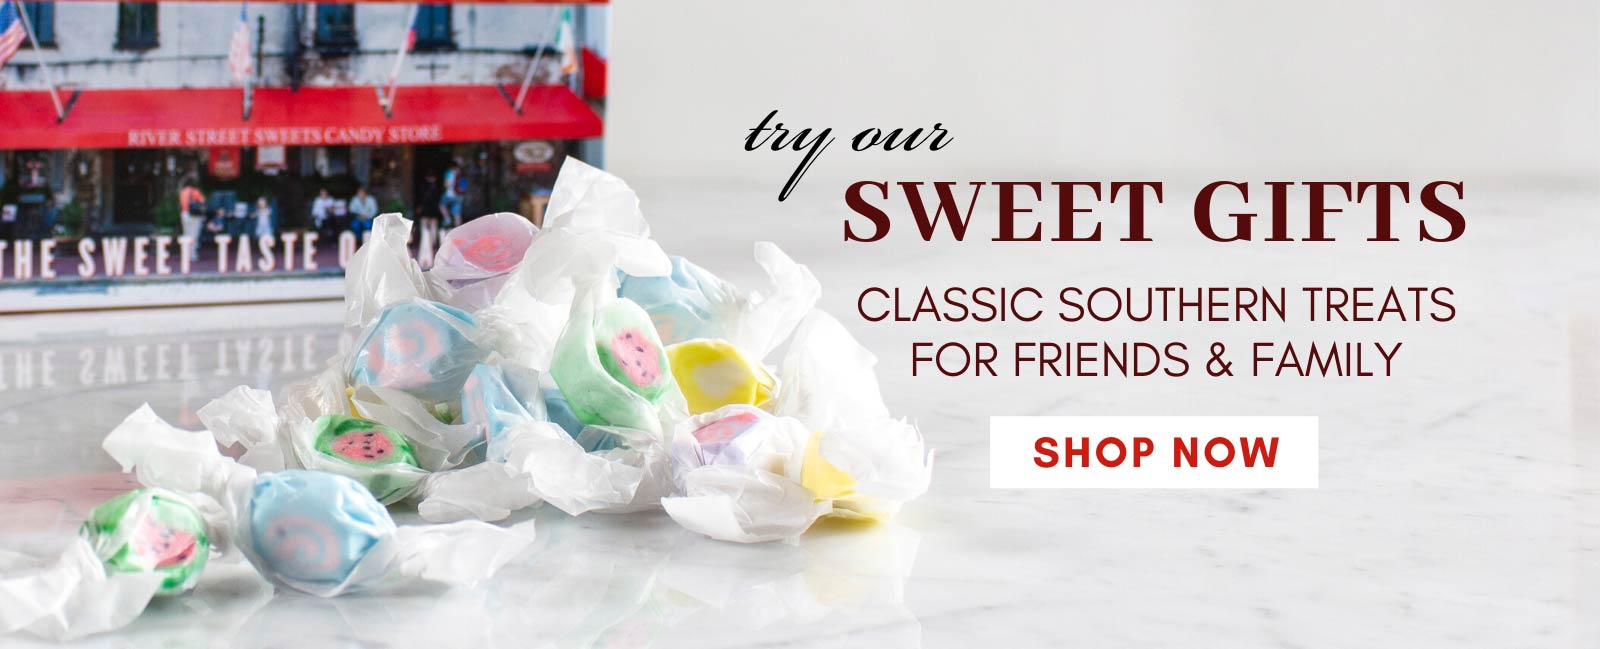 Save on sweets!